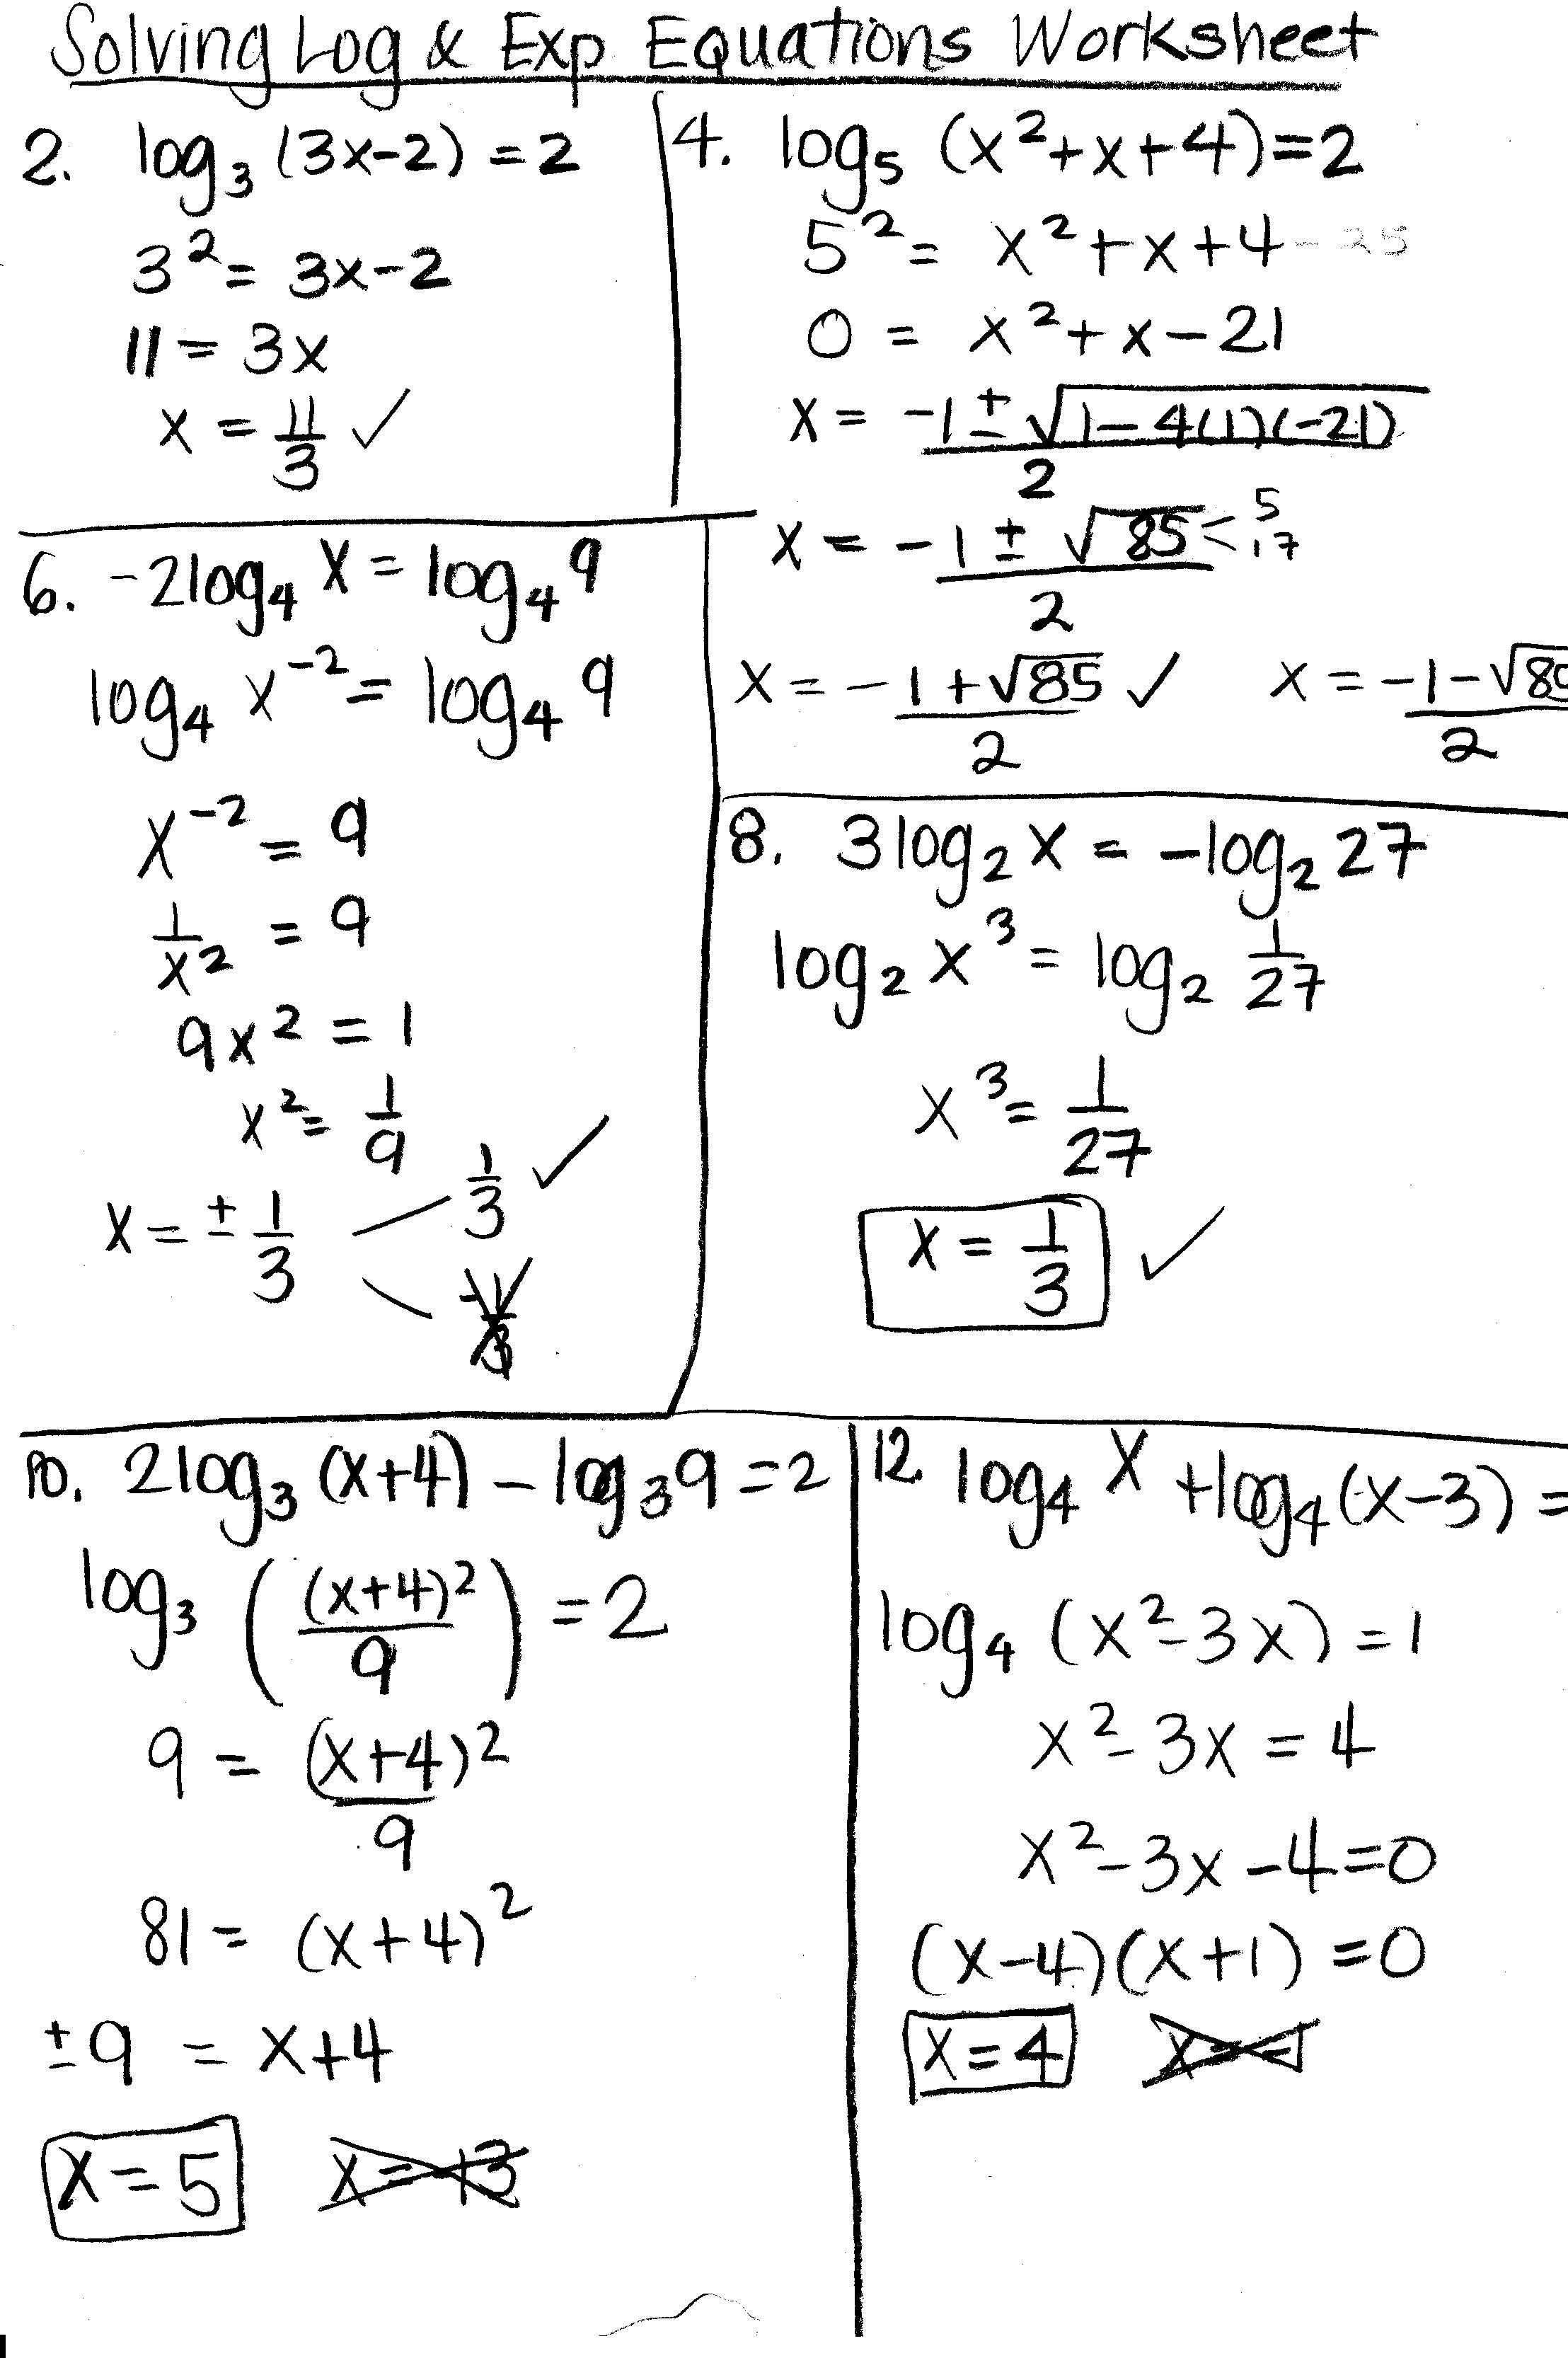 Solving Logarithmic Equations Worksheet Dengan Gambar